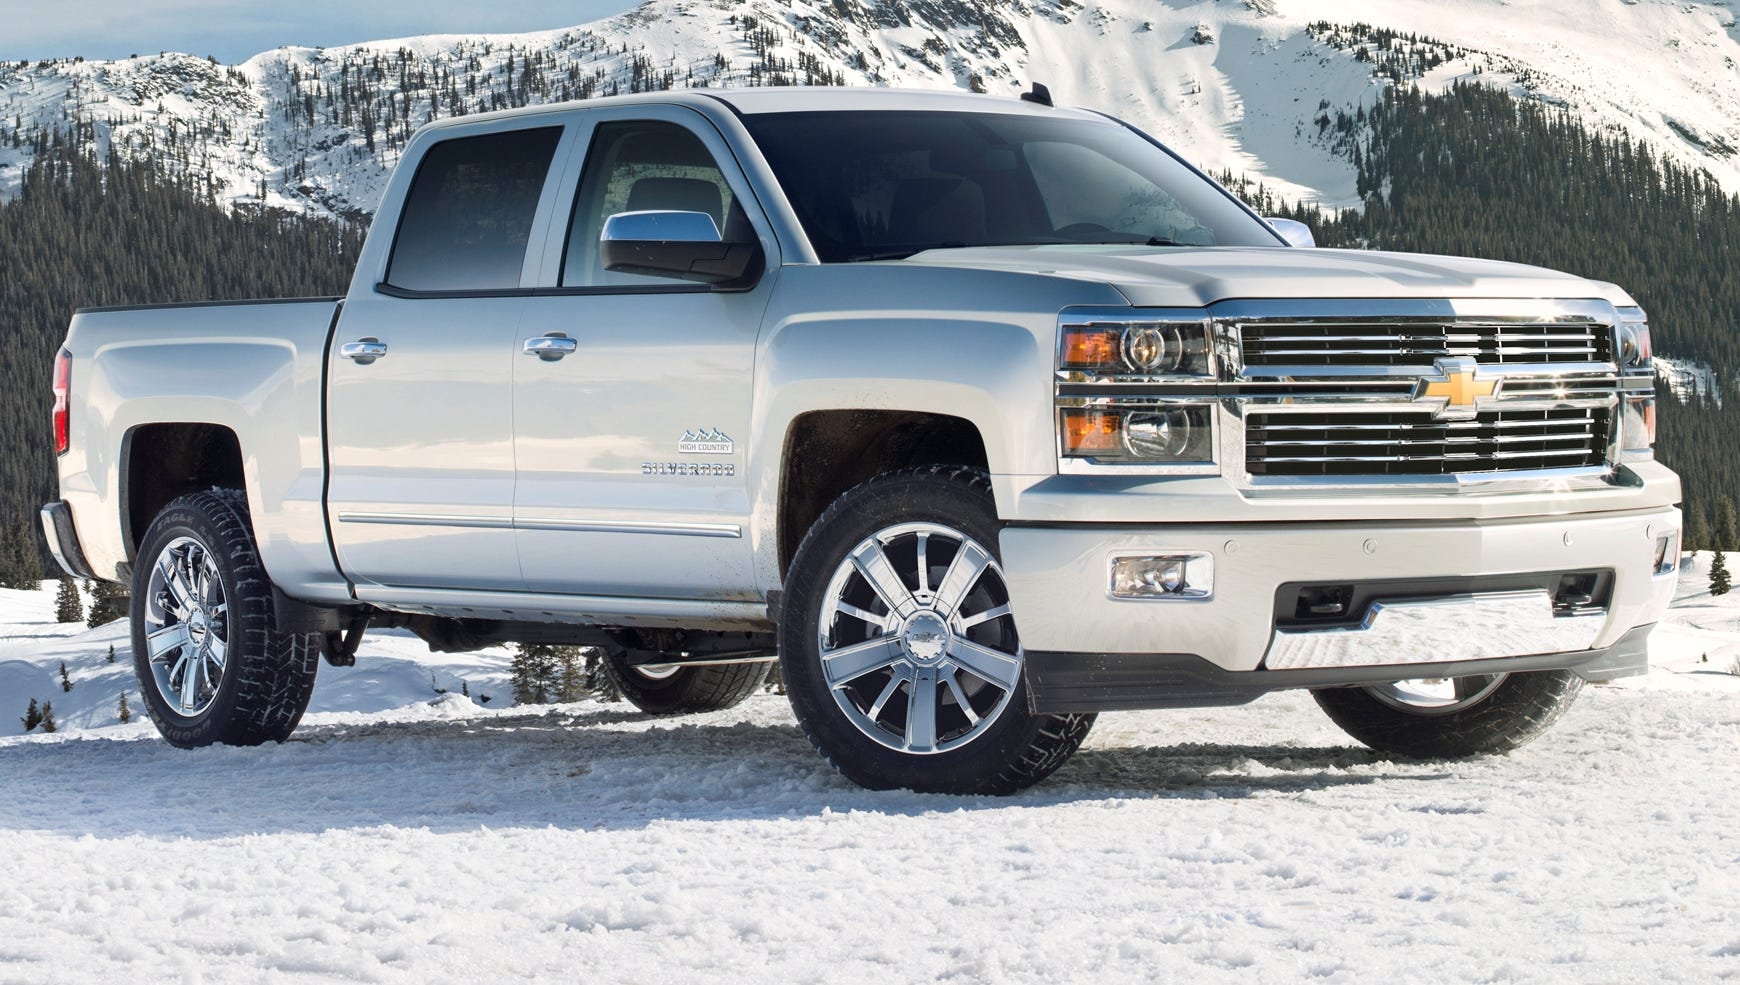 Chevy Rolls Out Cowboy Themed Luxury Silverado Pickup